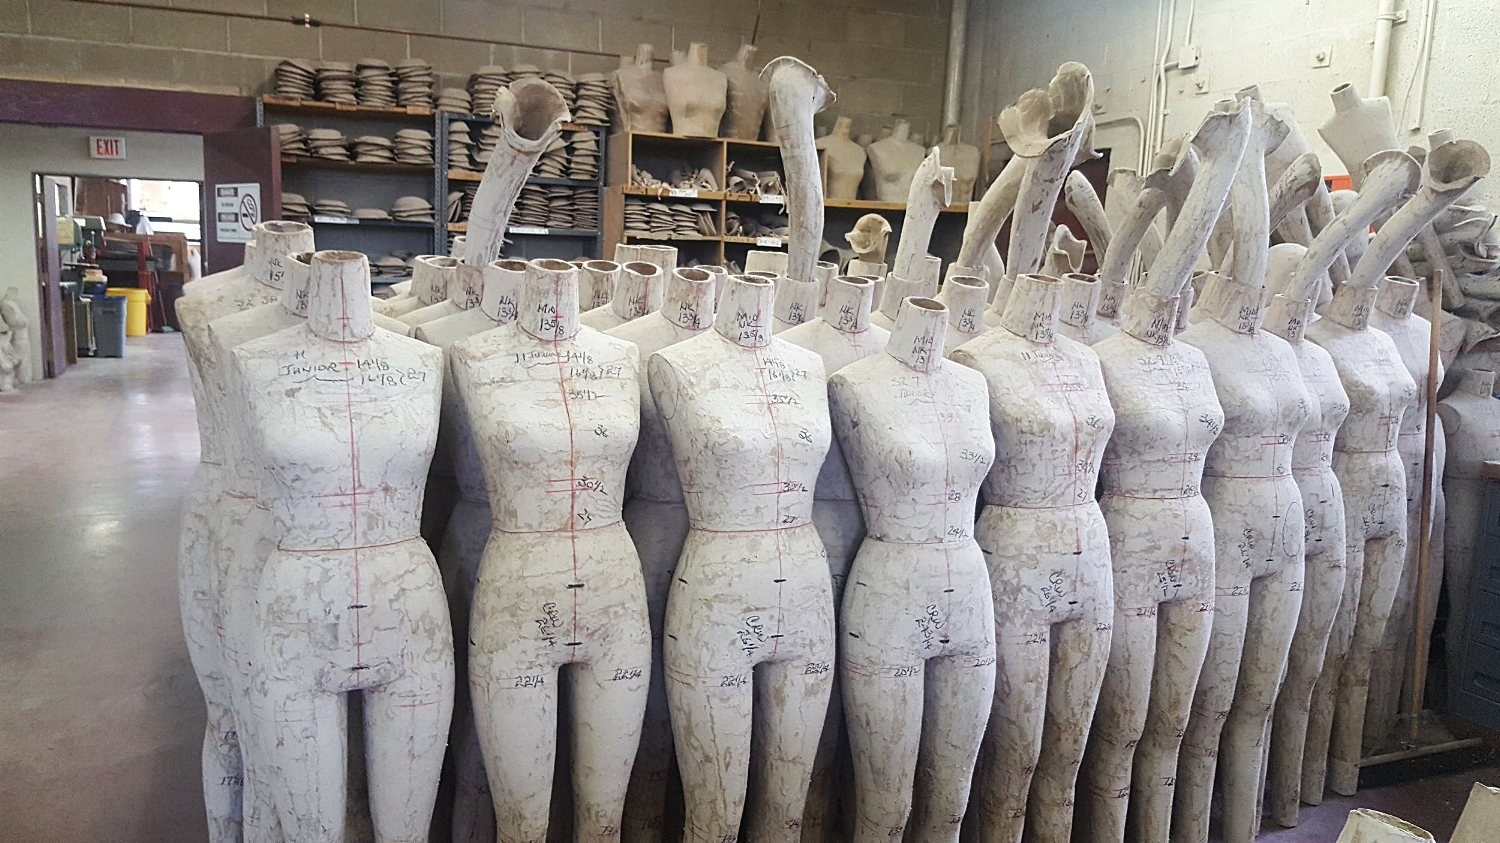 I love this picture! ---Forms, measurements, pencil markings, arms...no arms. My tour of their production facility was way too short. I would have loved to have been locked in here overnight to see if the forms actually come to life when the lights are out.